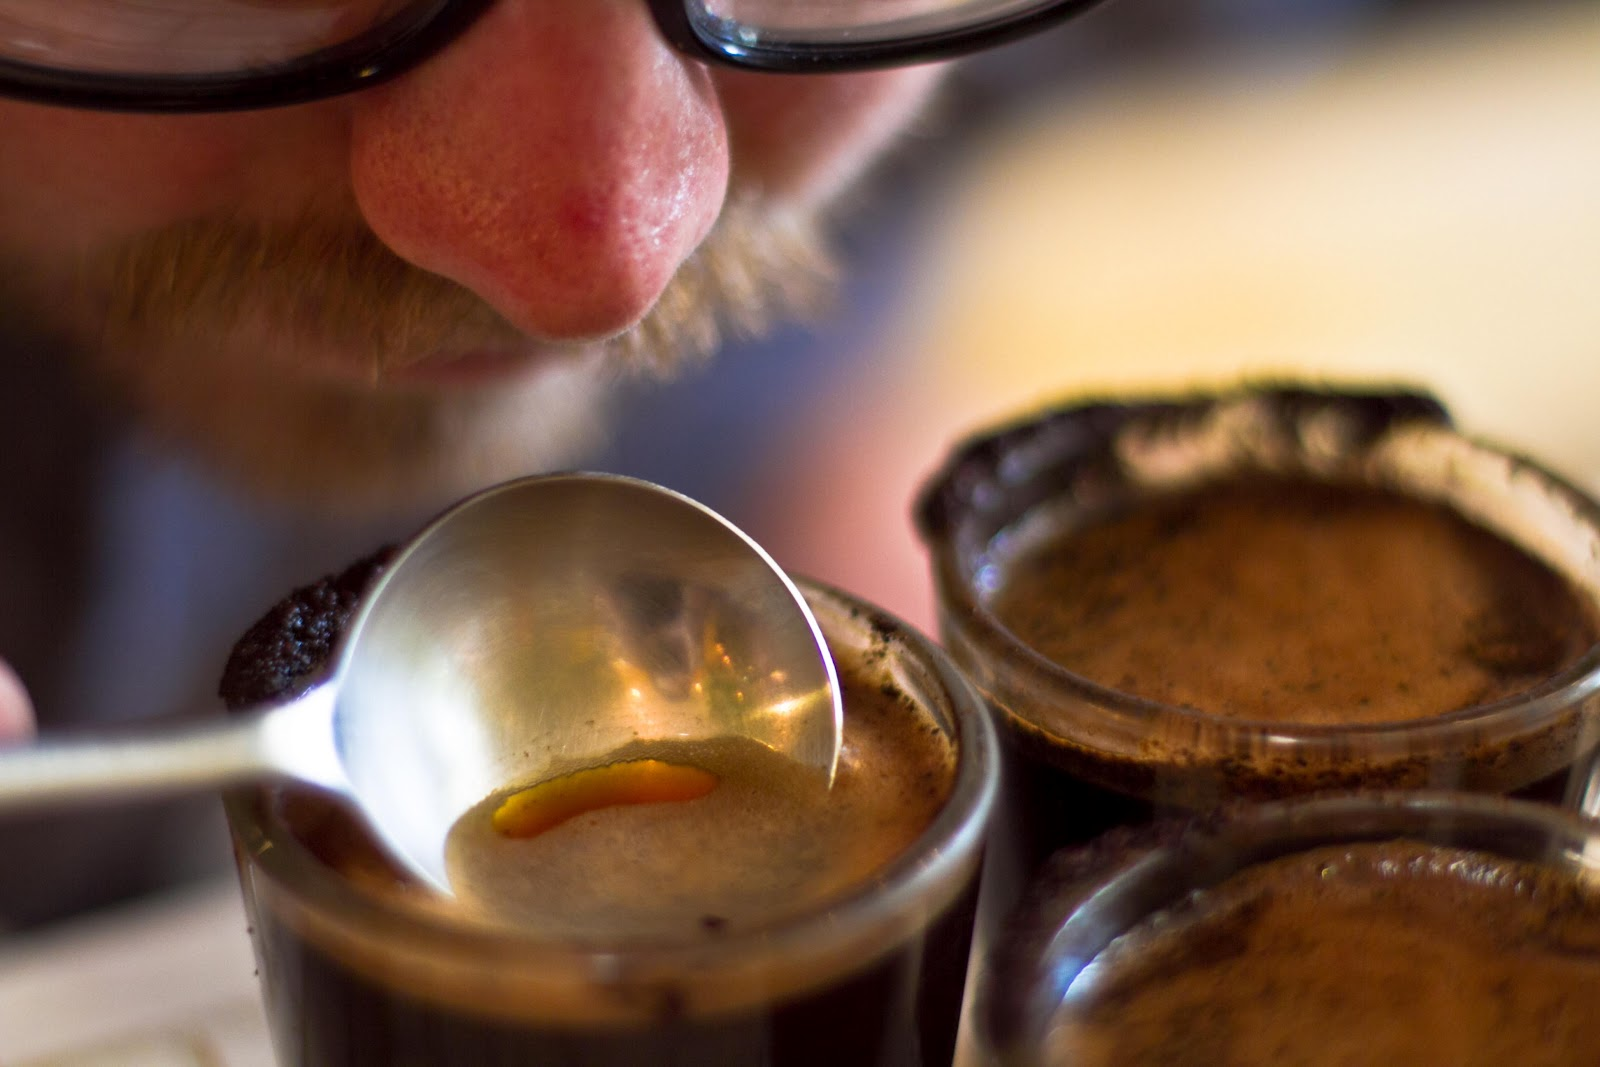 Cupping; specialty coffee